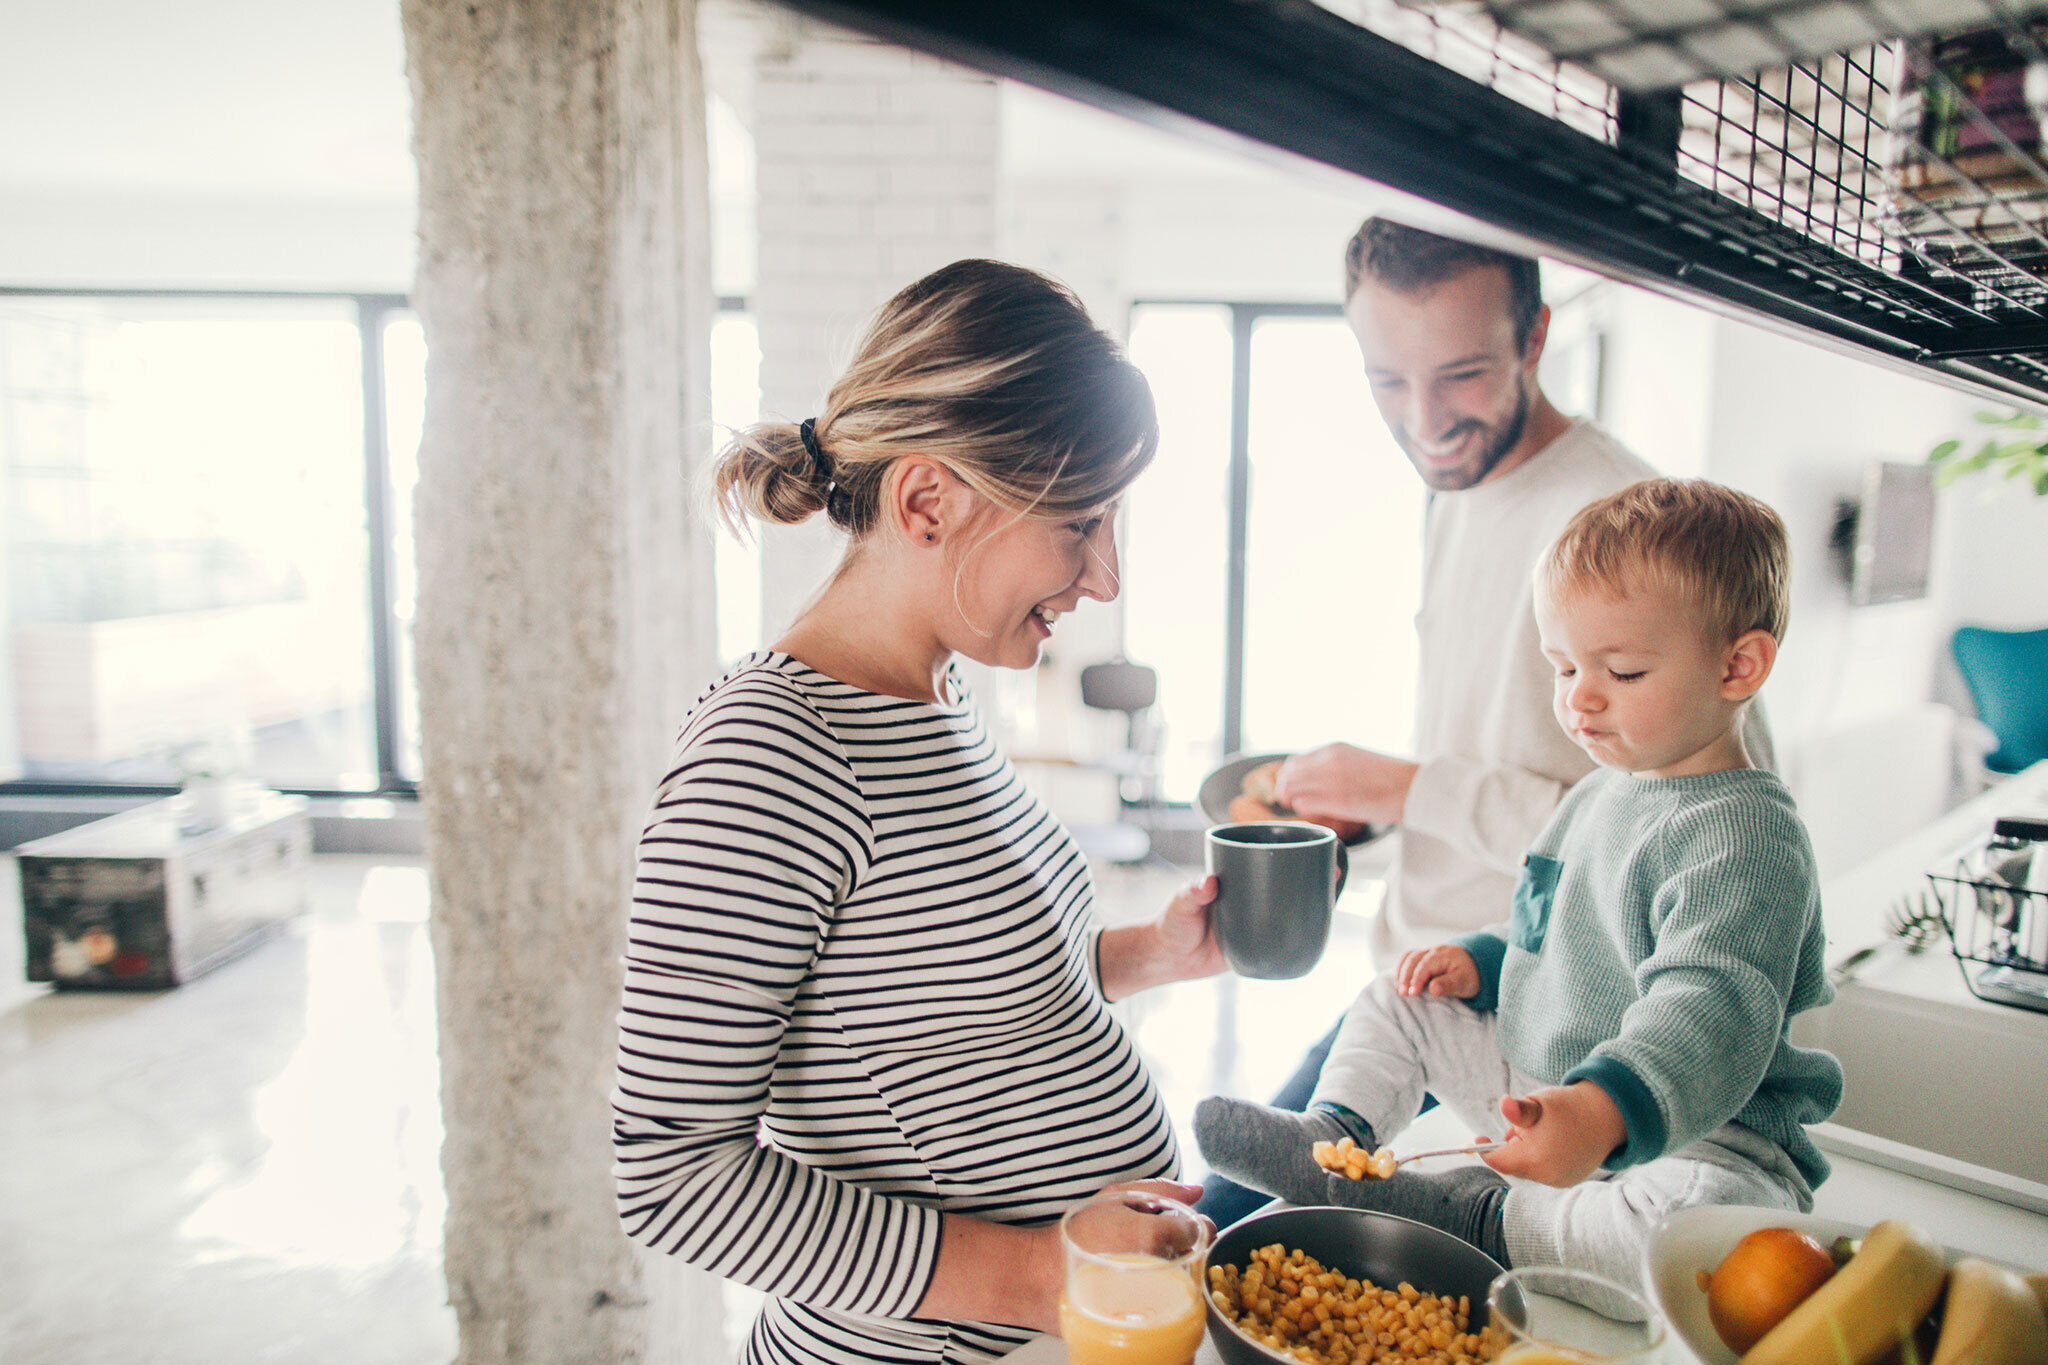 Millennial family eating breakfast and expecting baby